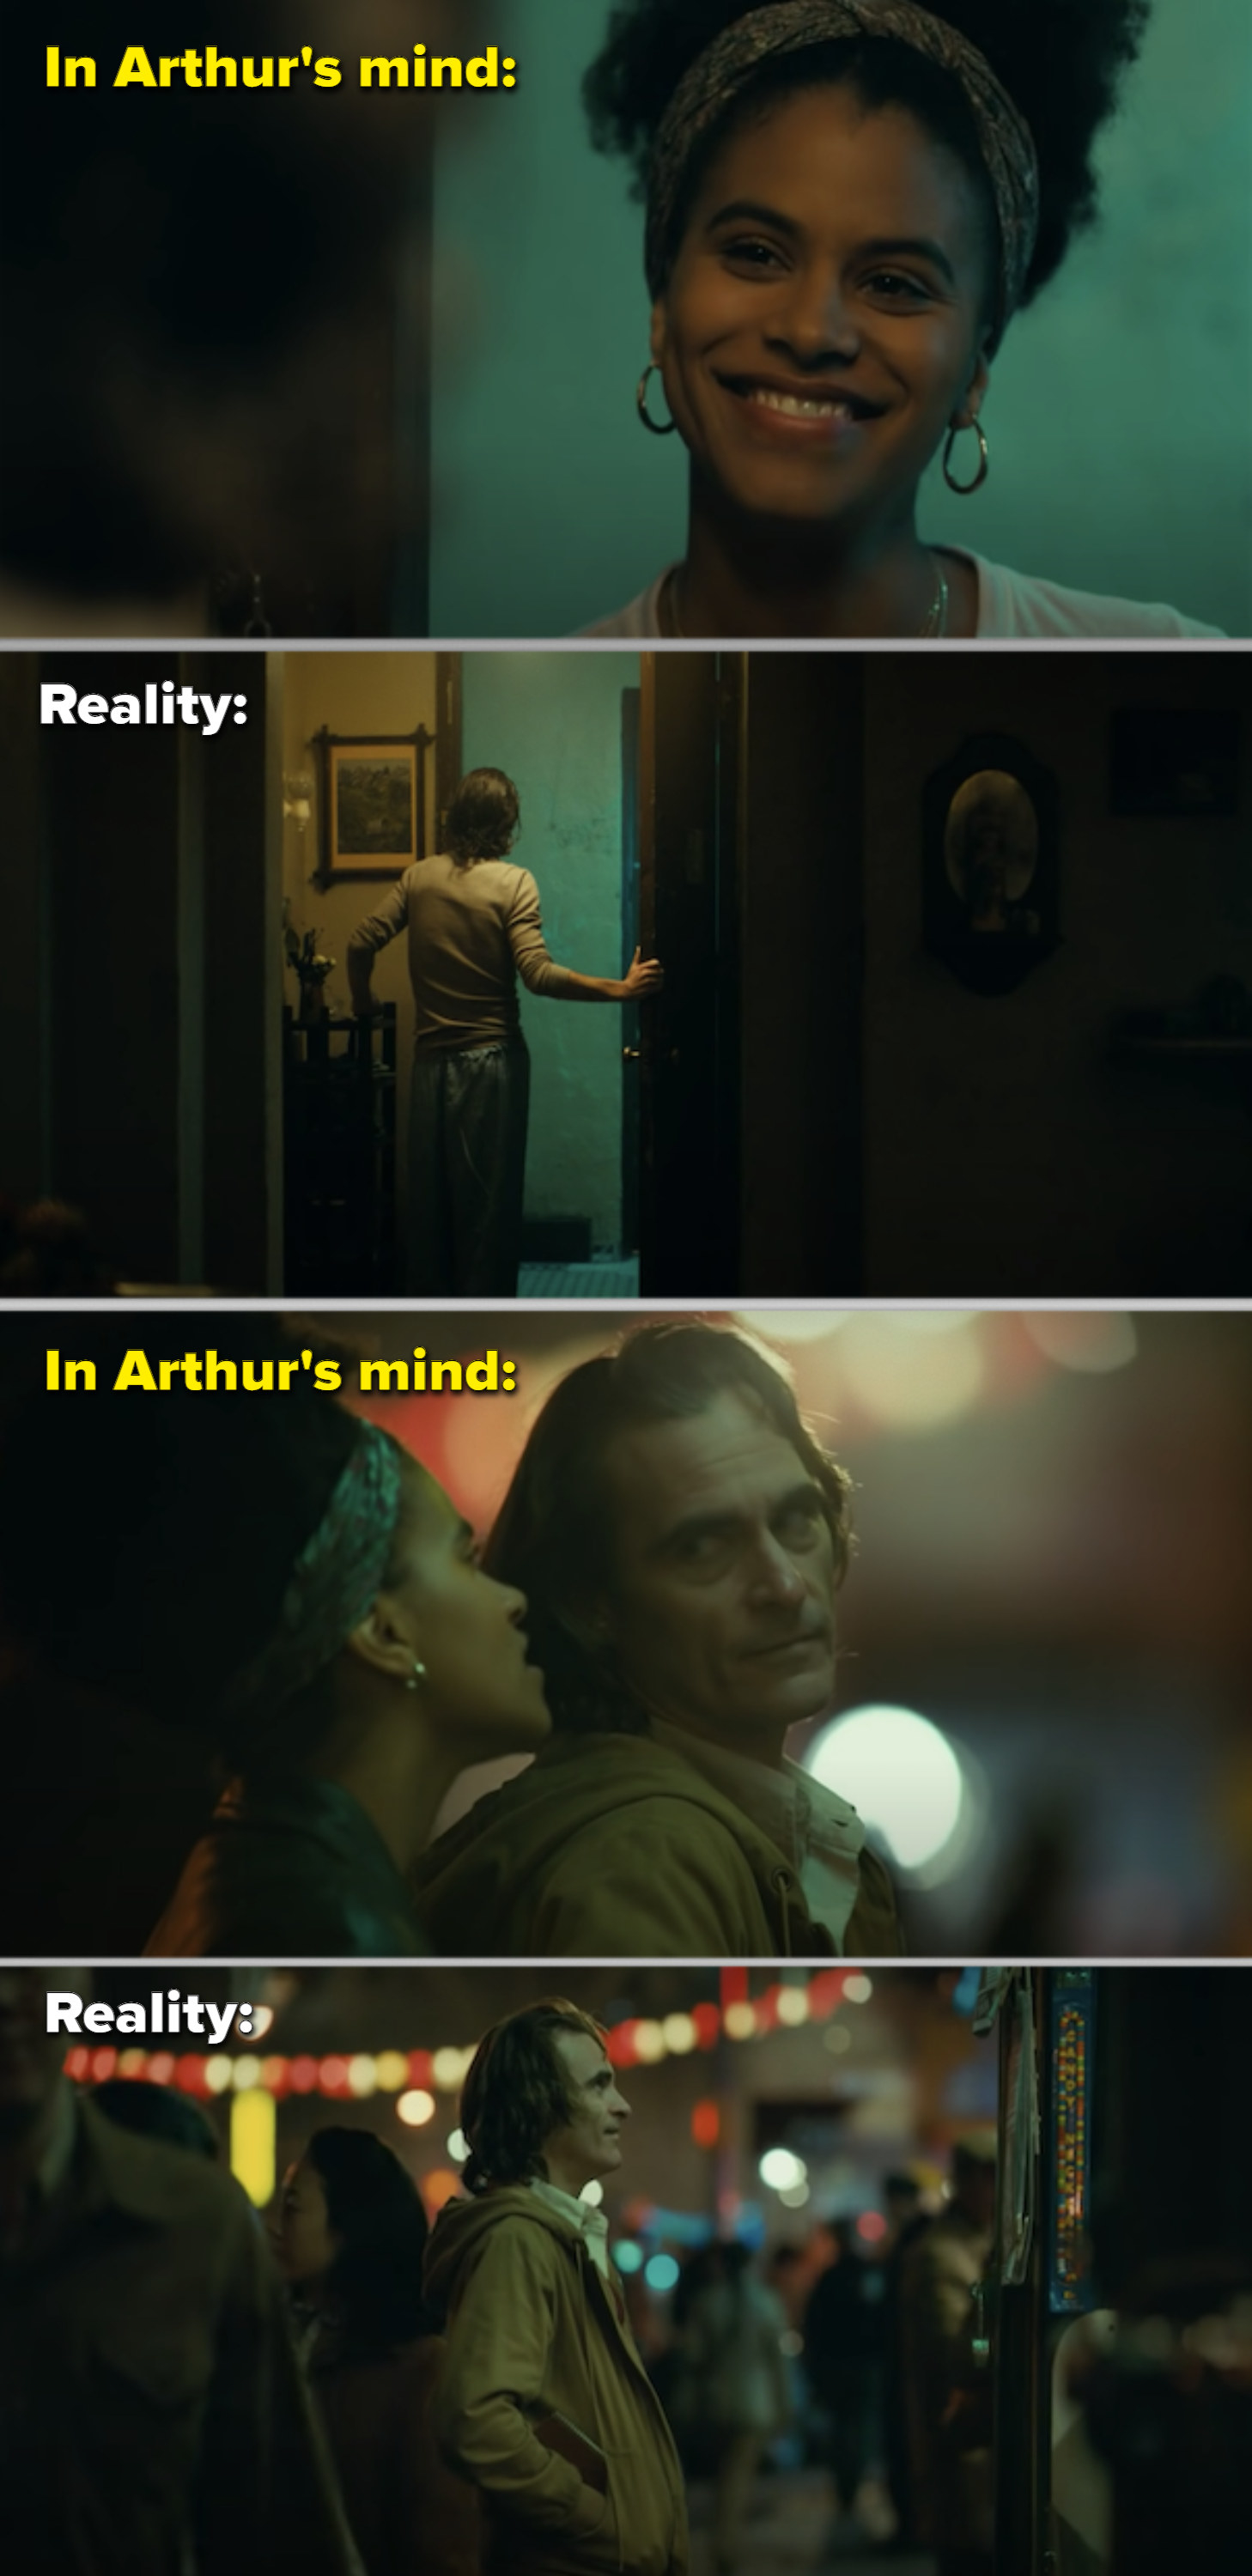 Arthur and the woman in his apartment